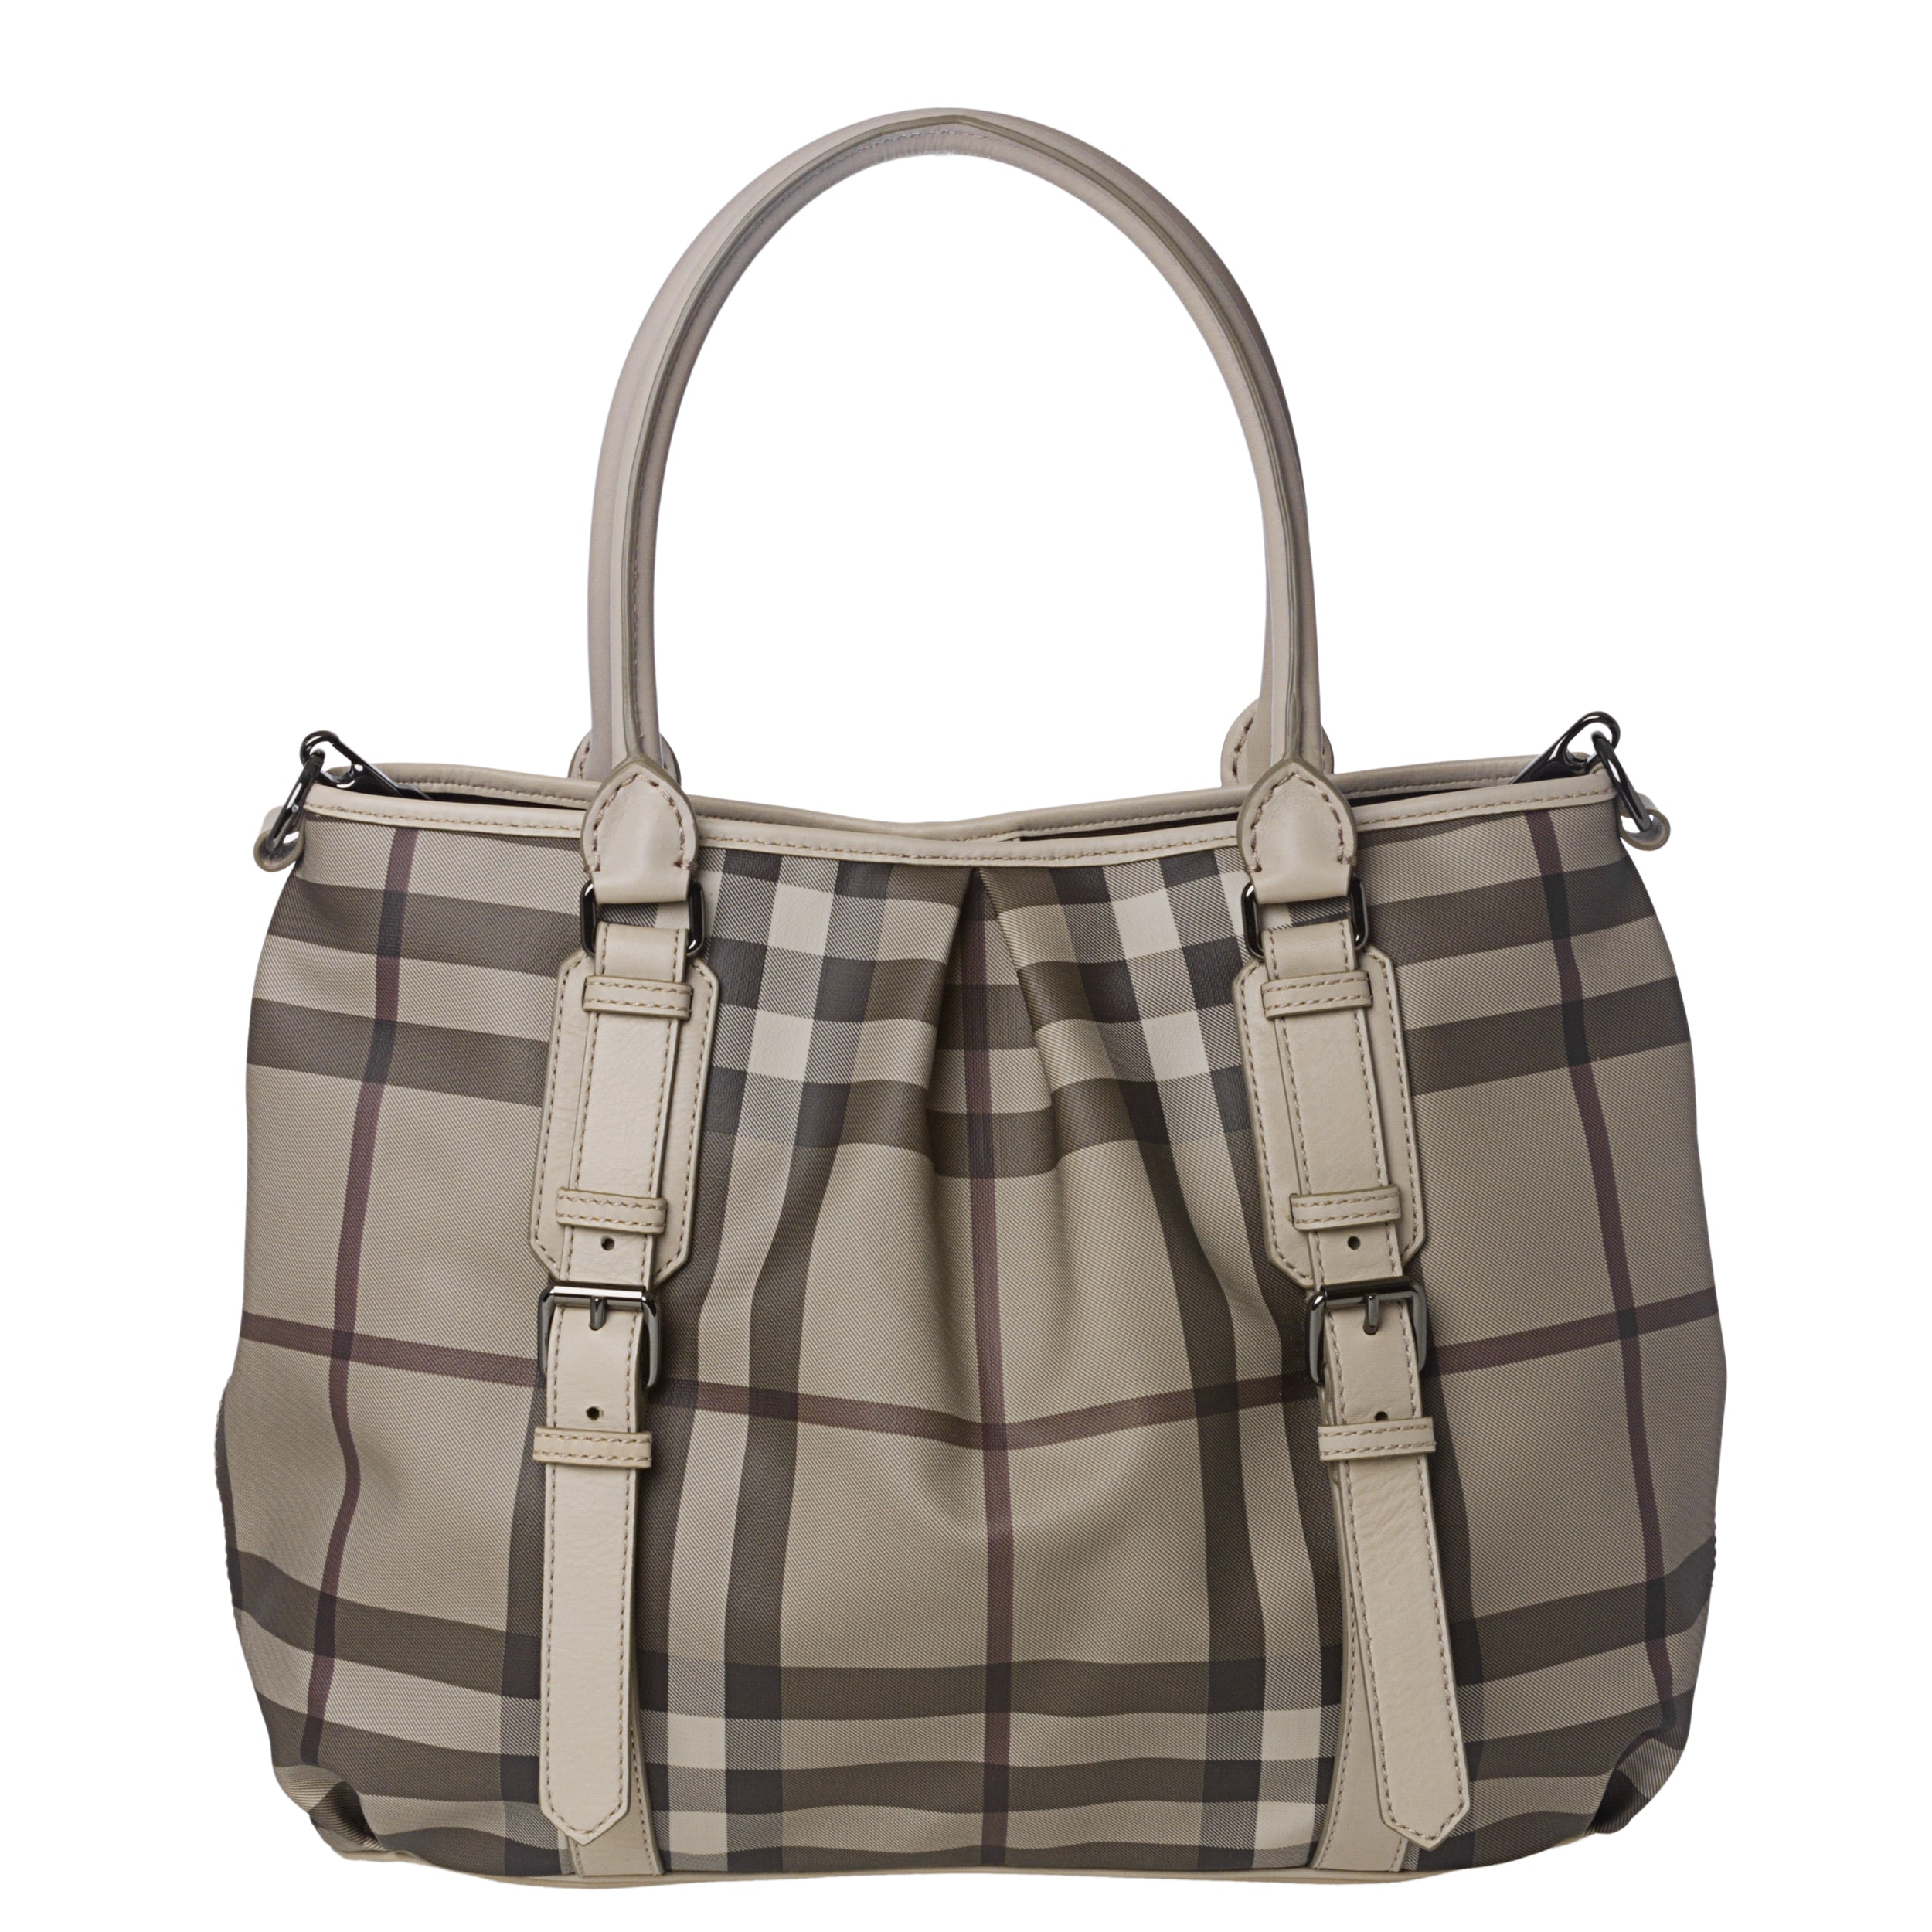 Burberry Medium Smoked Check Canvas  Leather Tote Bag on PopScreen 45549662c1cea